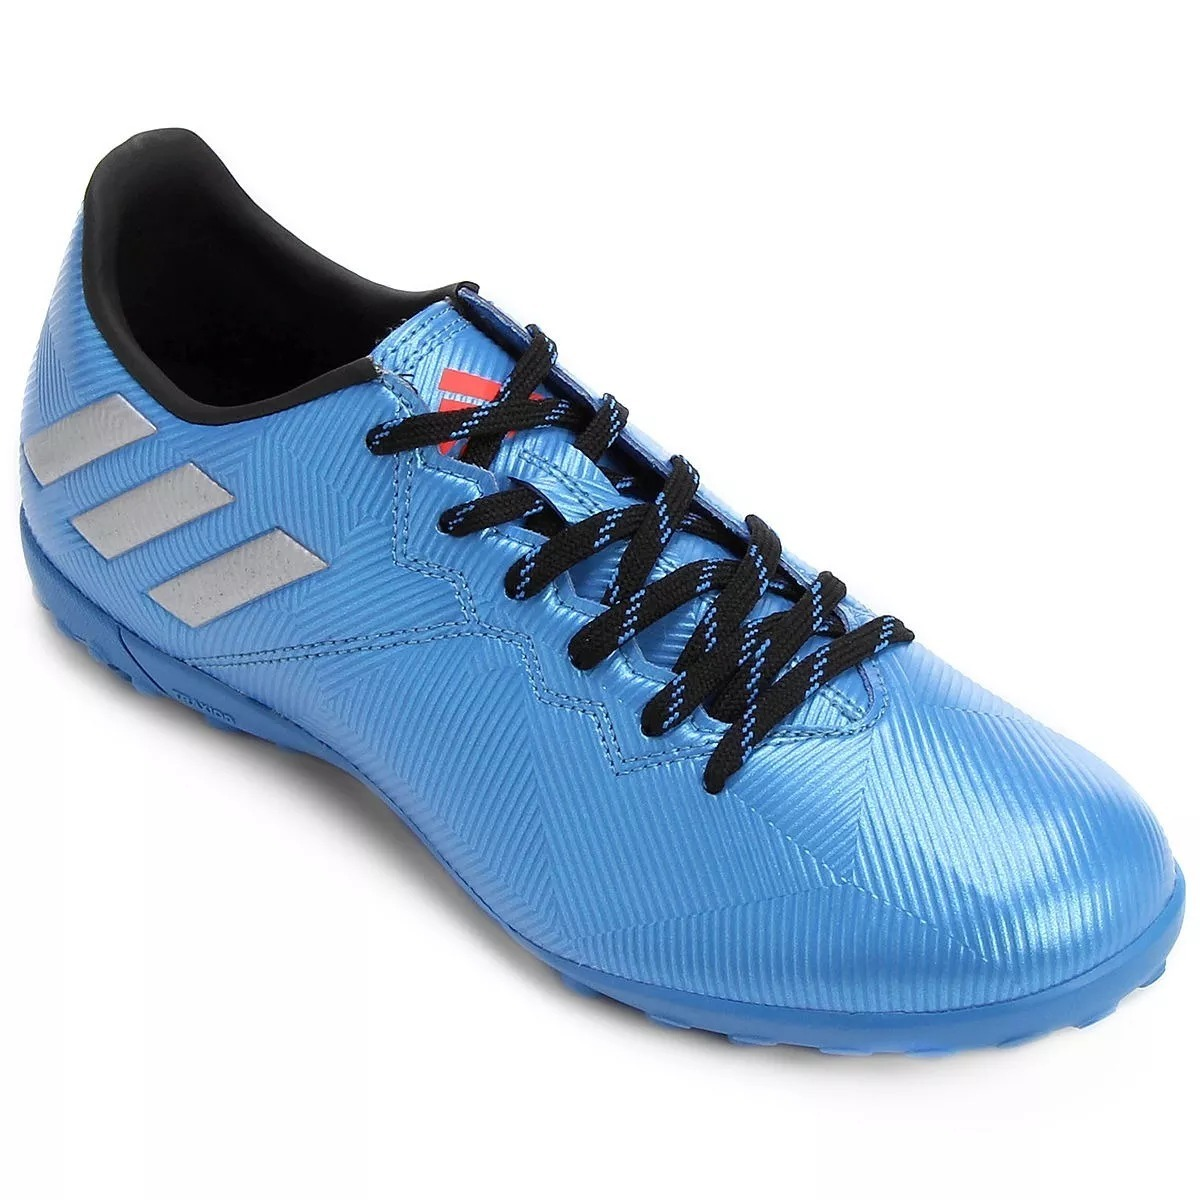 91d1fd46e2 chuteira society adidas messi 16.4 tf original. Carregando zoom.